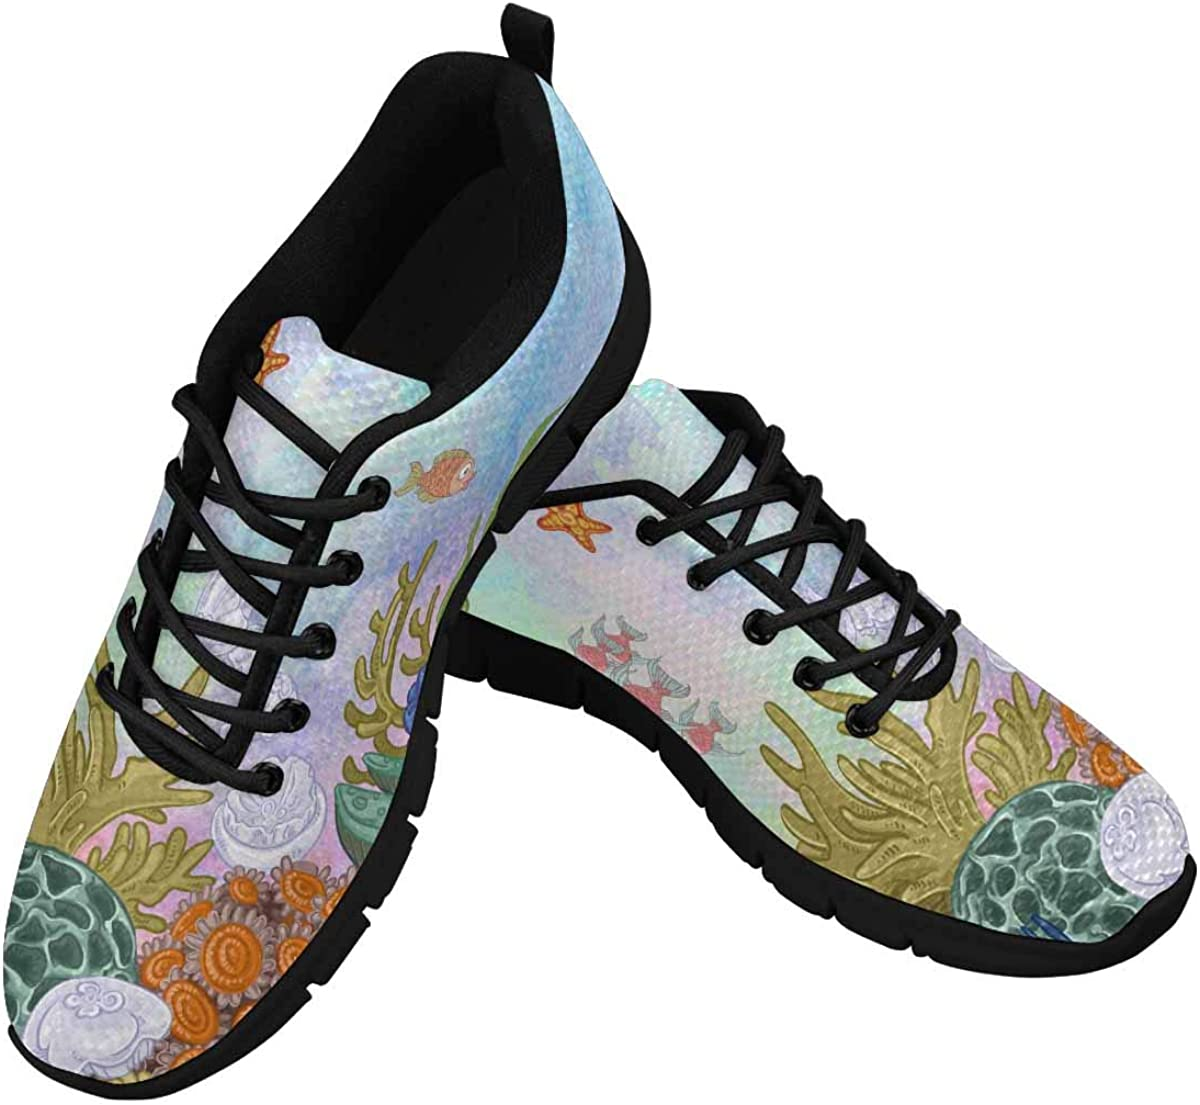 InterestPrint Underwater Background Women's Running Shoes Mesh Breathable Sports Casual Shoes